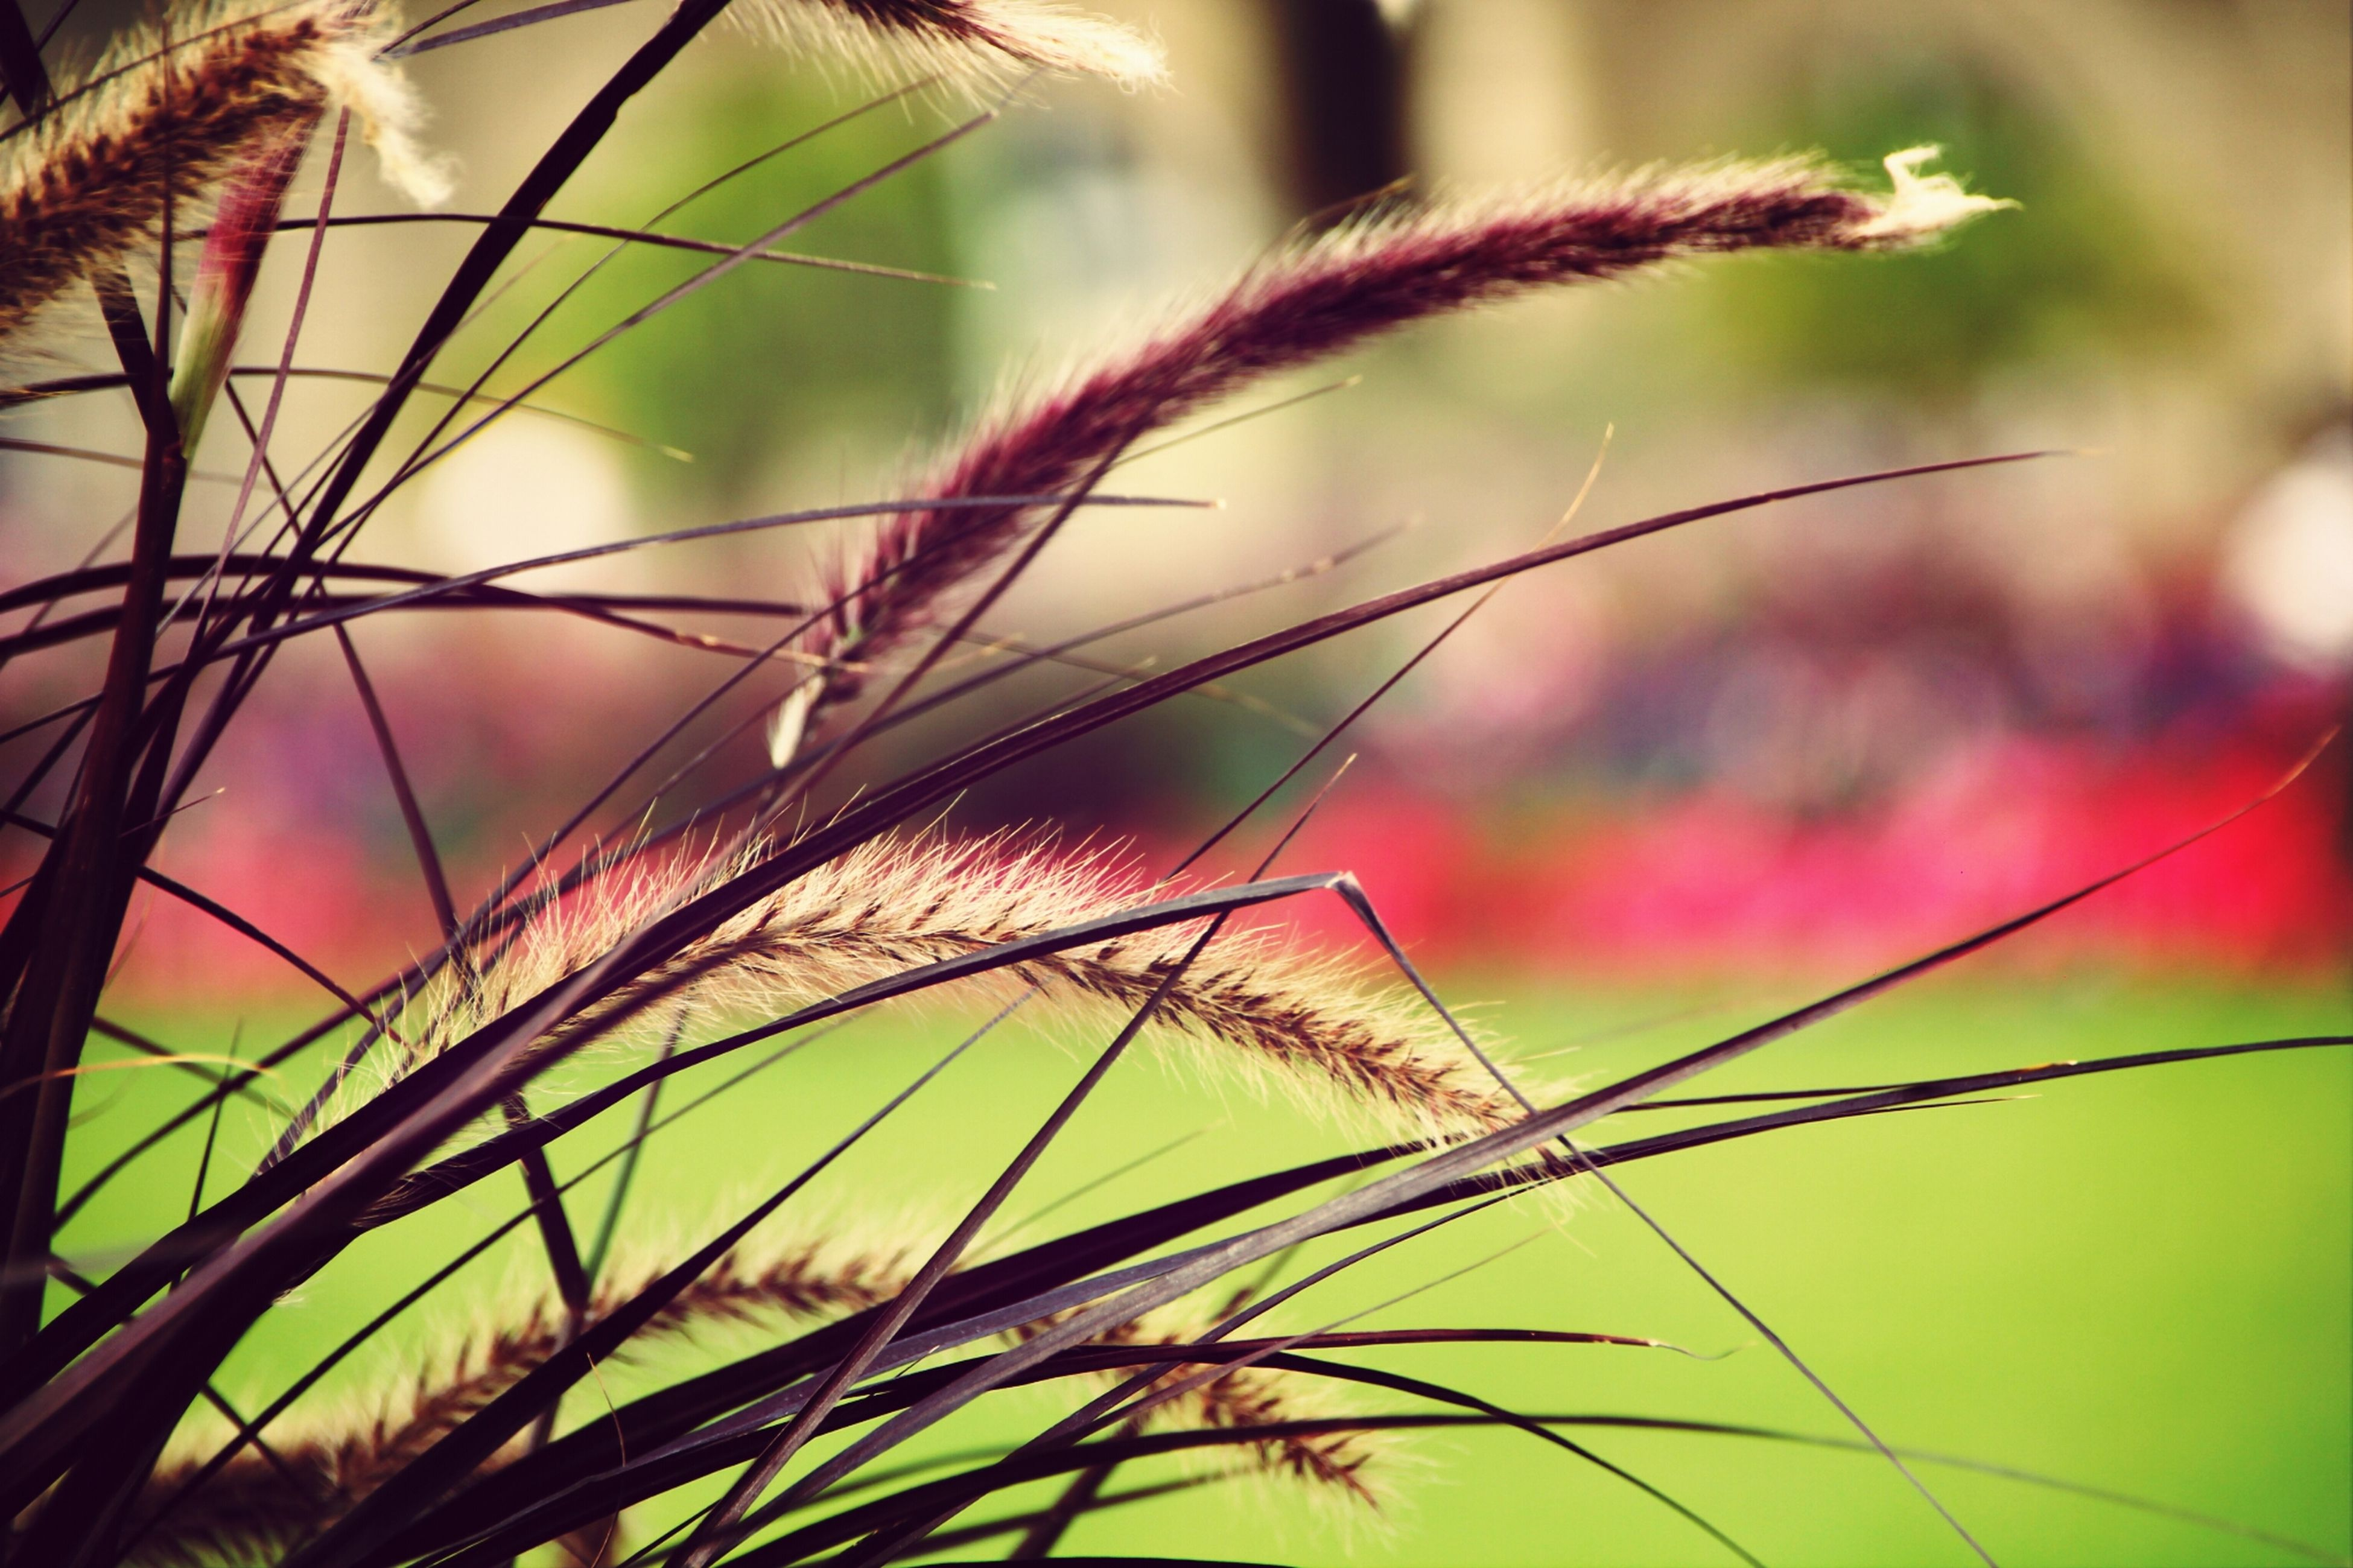 growth, close-up, focus on foreground, plant, nature, fragility, stem, beauty in nature, spiked, flower, freshness, day, leaf, outdoors, thorn, twig, sharp, selective focus, no people, botany